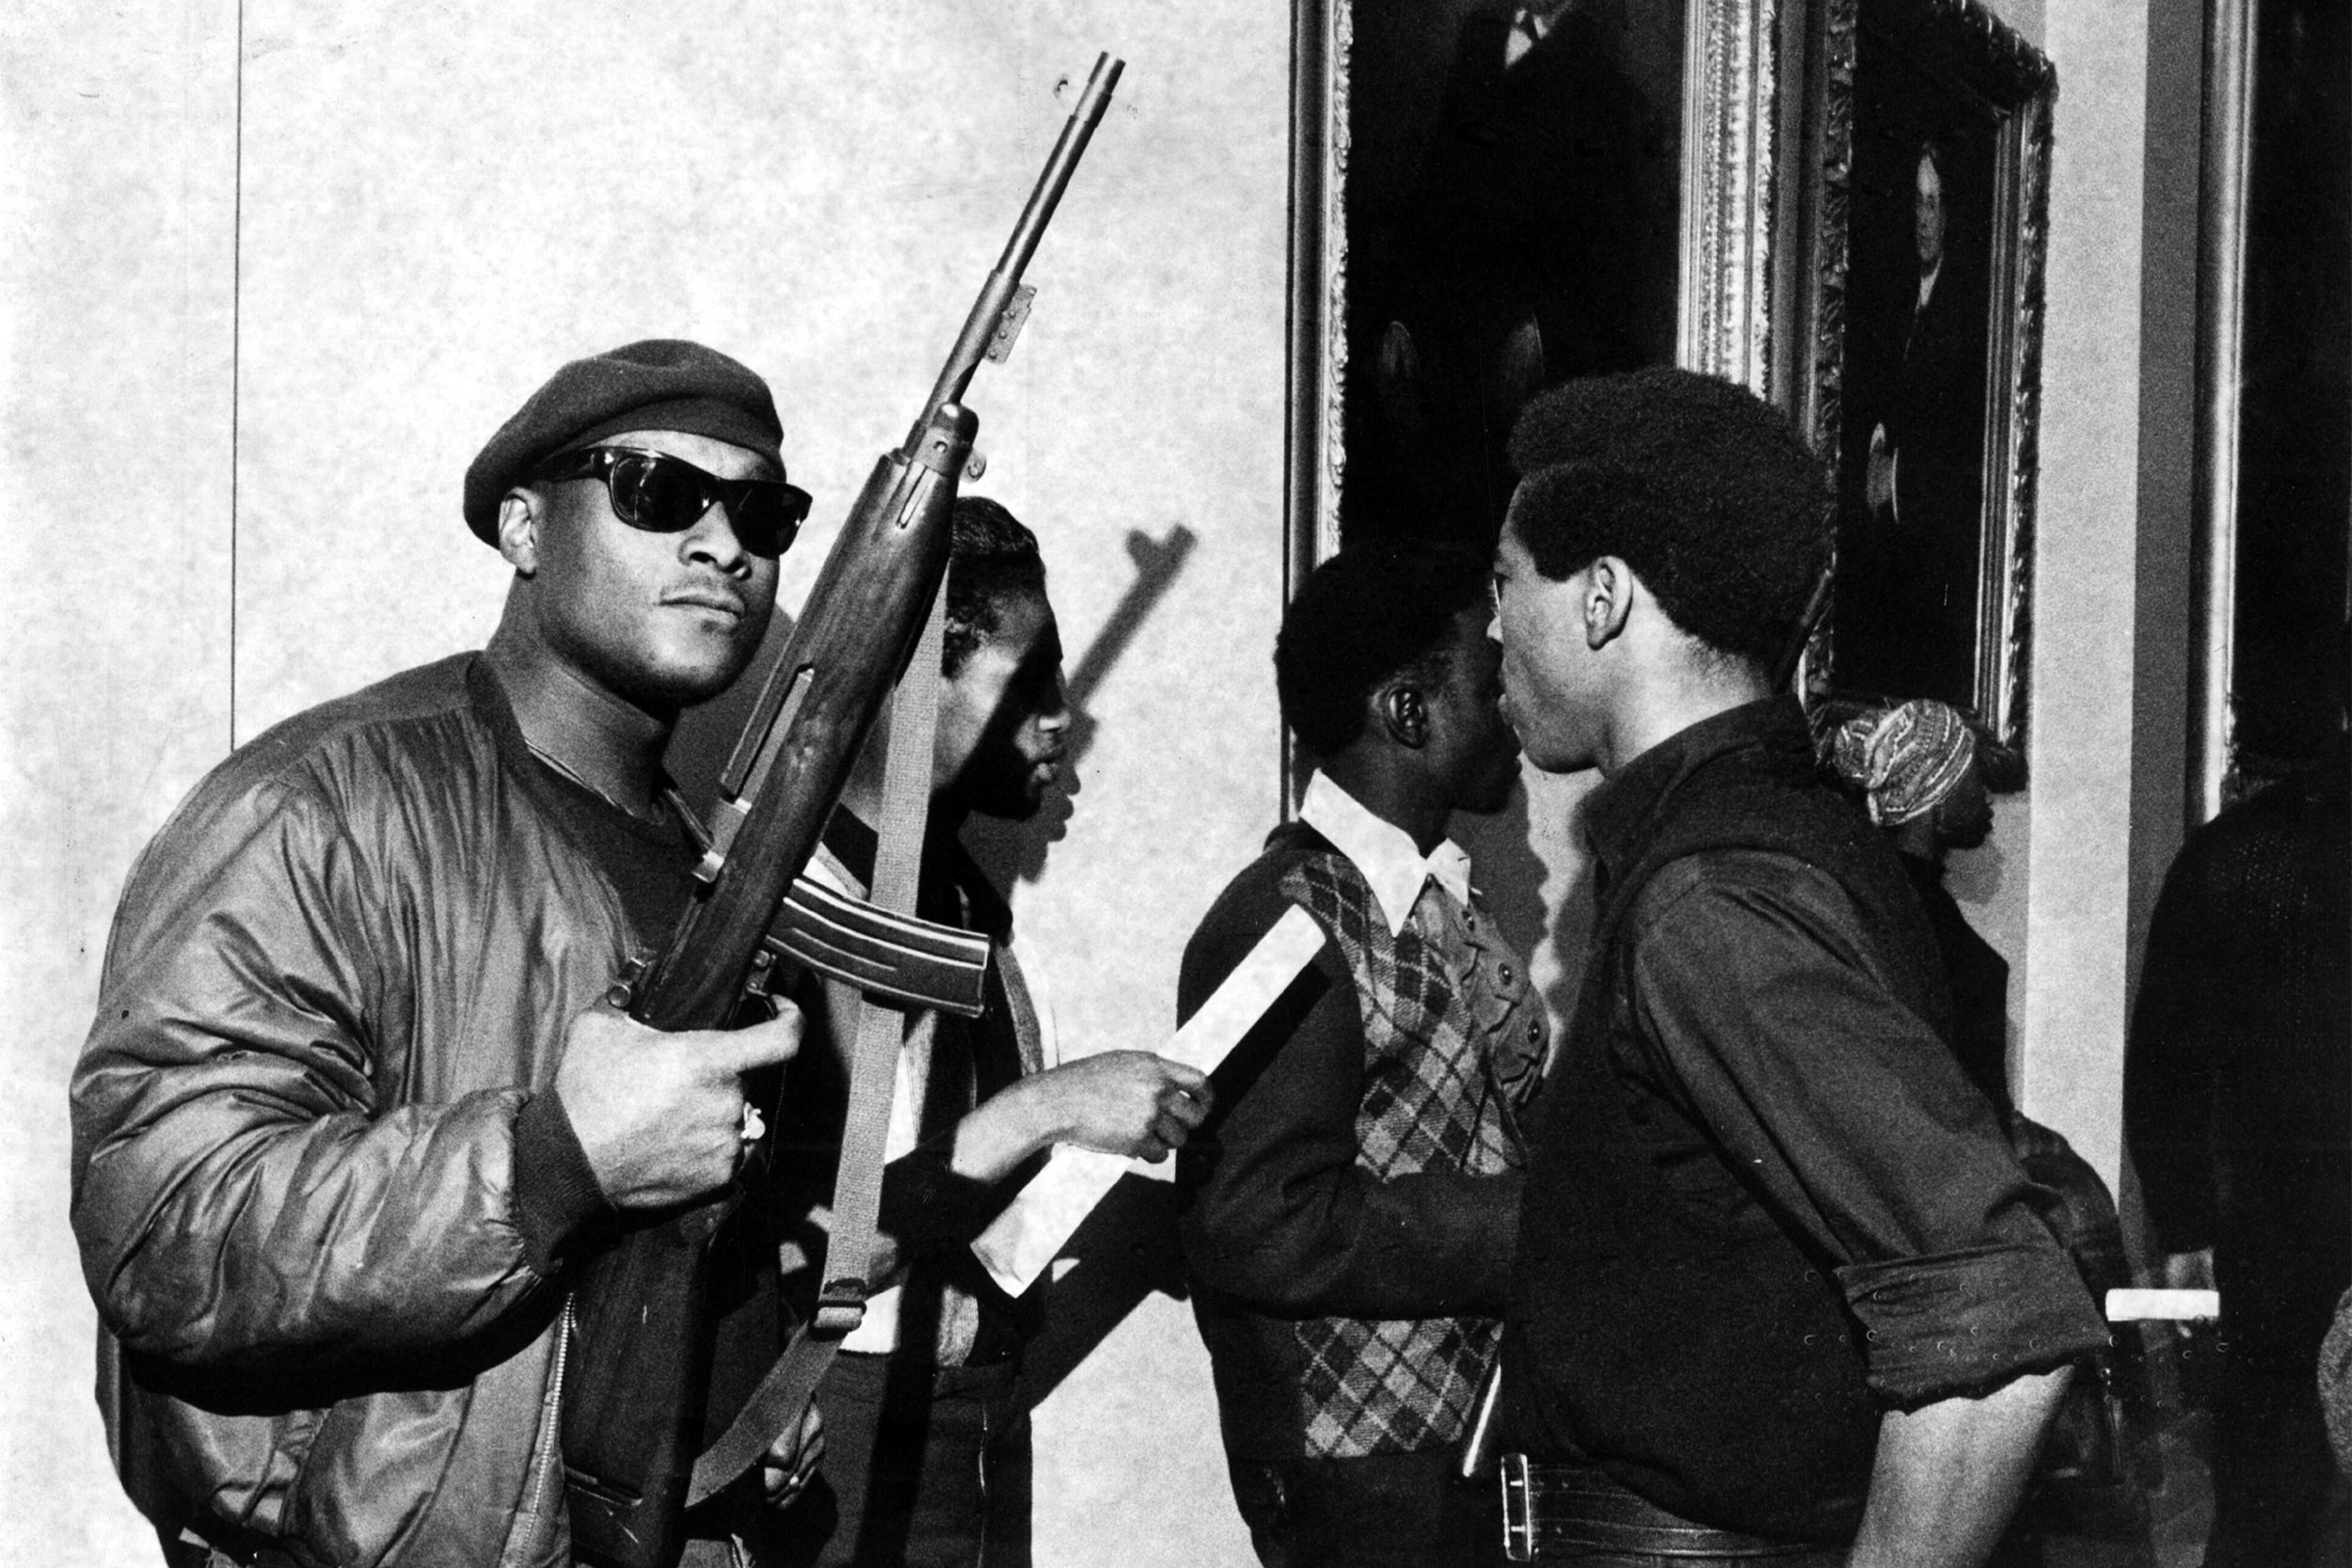 Dec. 12, 2006 - Sacramento, CALIFORNIA - Black panthers storm the California Capitol with guns in Sacramento May 2nd, 1967...SAMCC SBPM 840 (Credit Image: a© Samcc/Sacramento Bee/ZUMAPRESS.com)